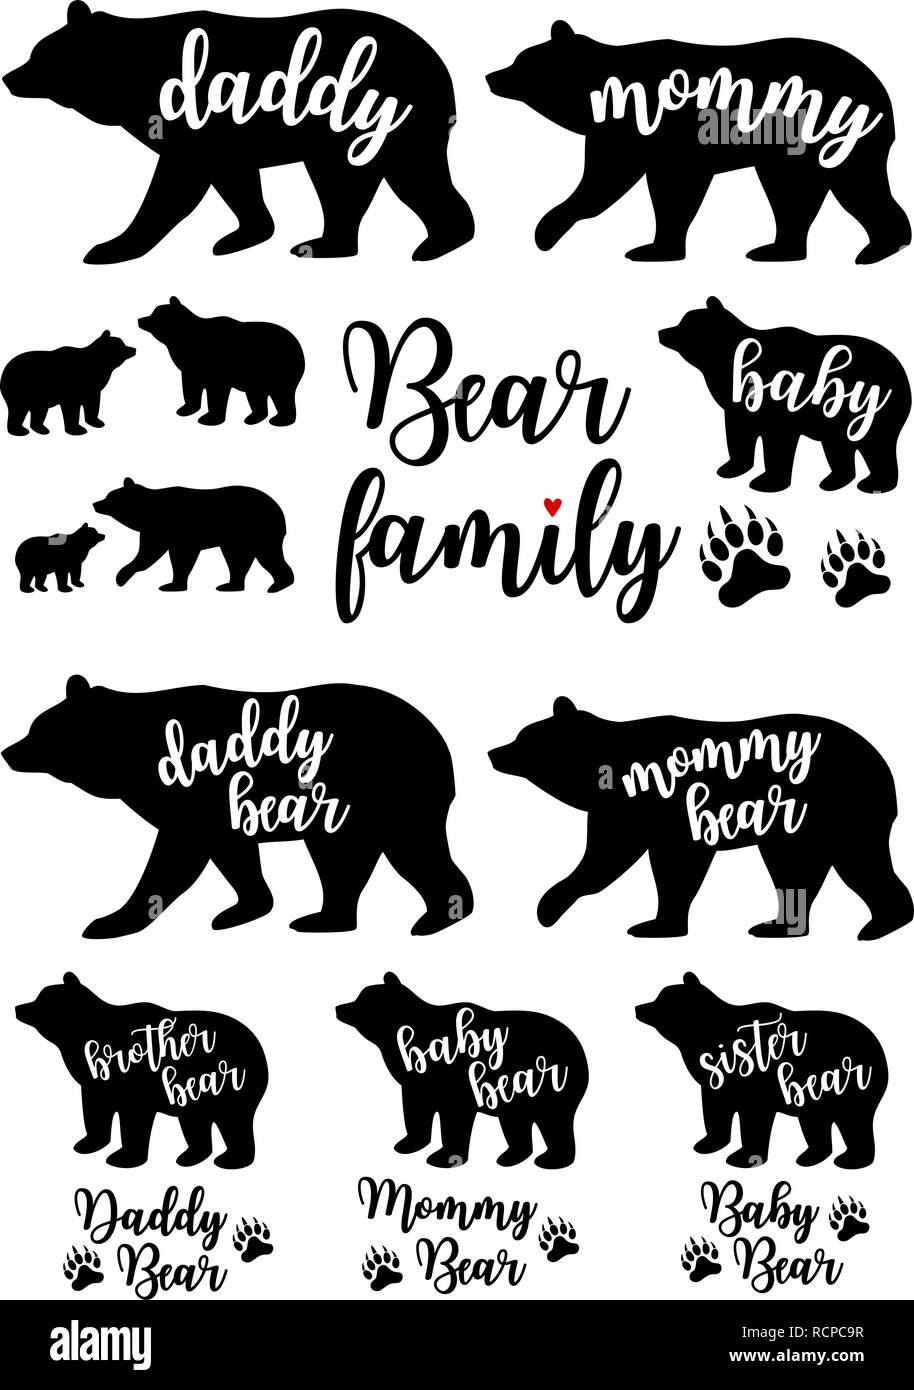 Daddy bear, mommy bear, baby, bear family silhouettes, Mother's day, Father's day, set of vector graphic design elements - Stock Image